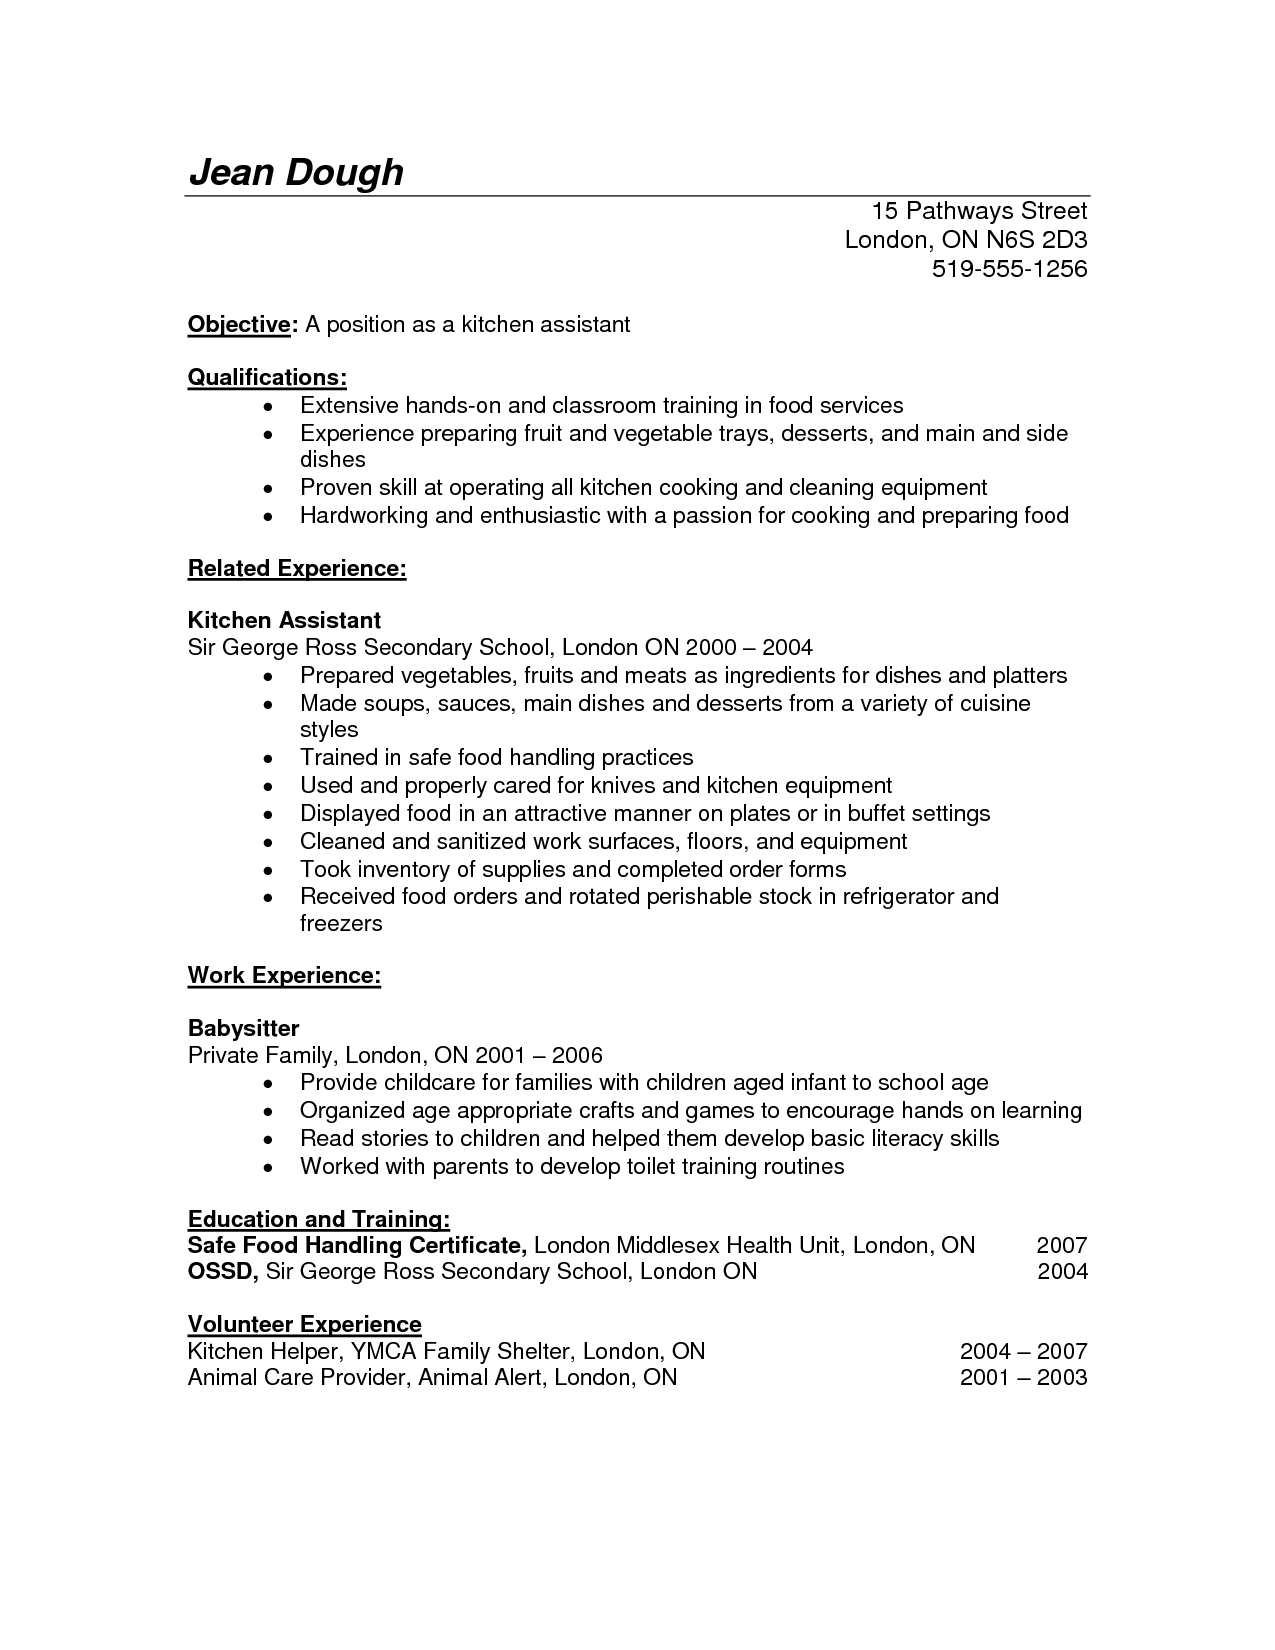 Resume examples kitchen helper resume examples pinterest cover resume examples kitchen helper examples helper kitchen resume resumeexamples spiritdancerdesigns Images